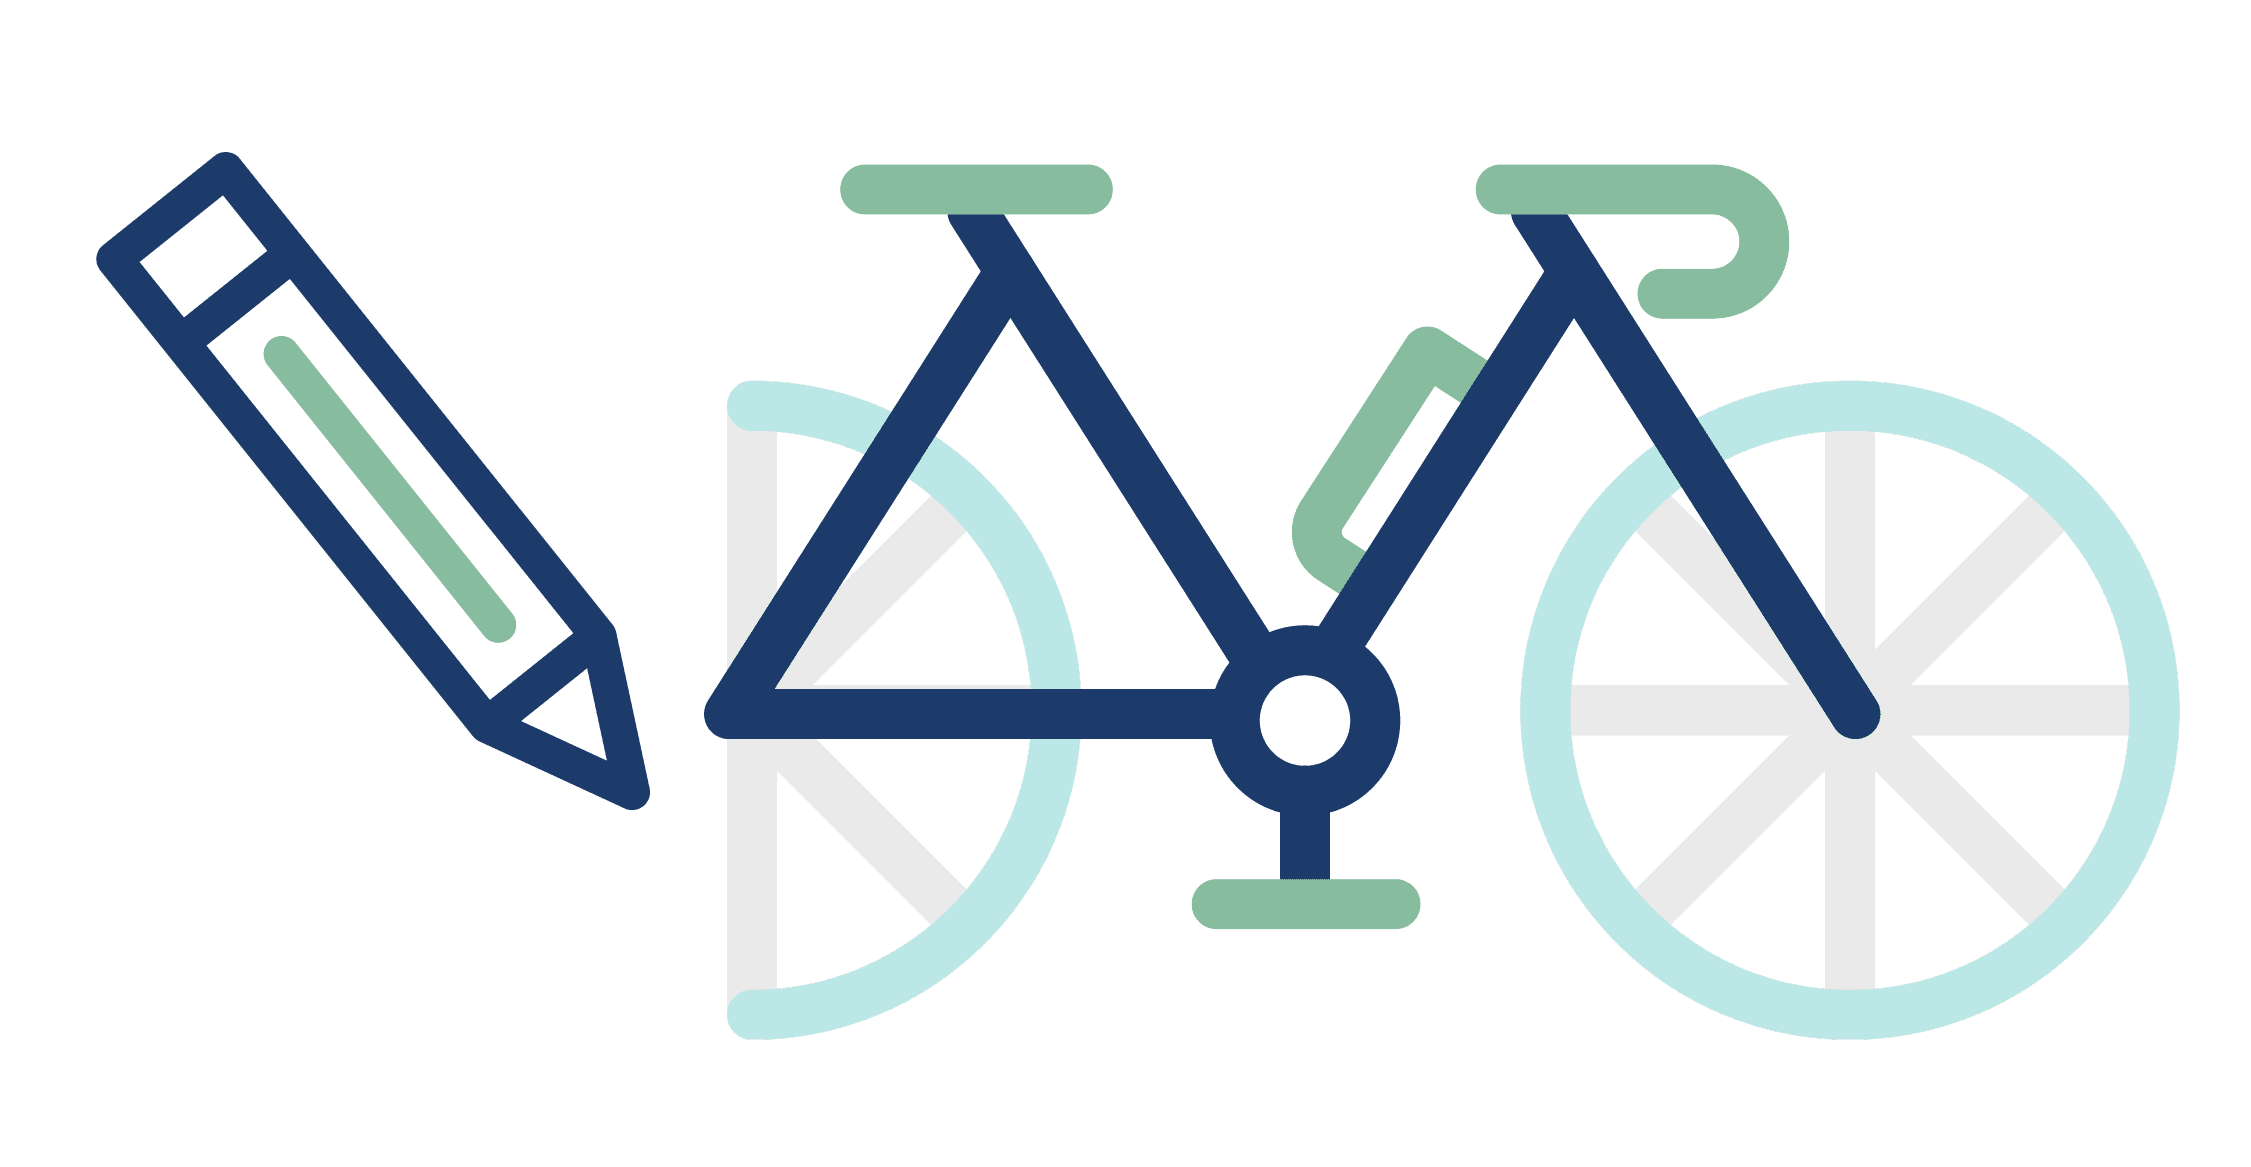 Electric Bike Design Icon